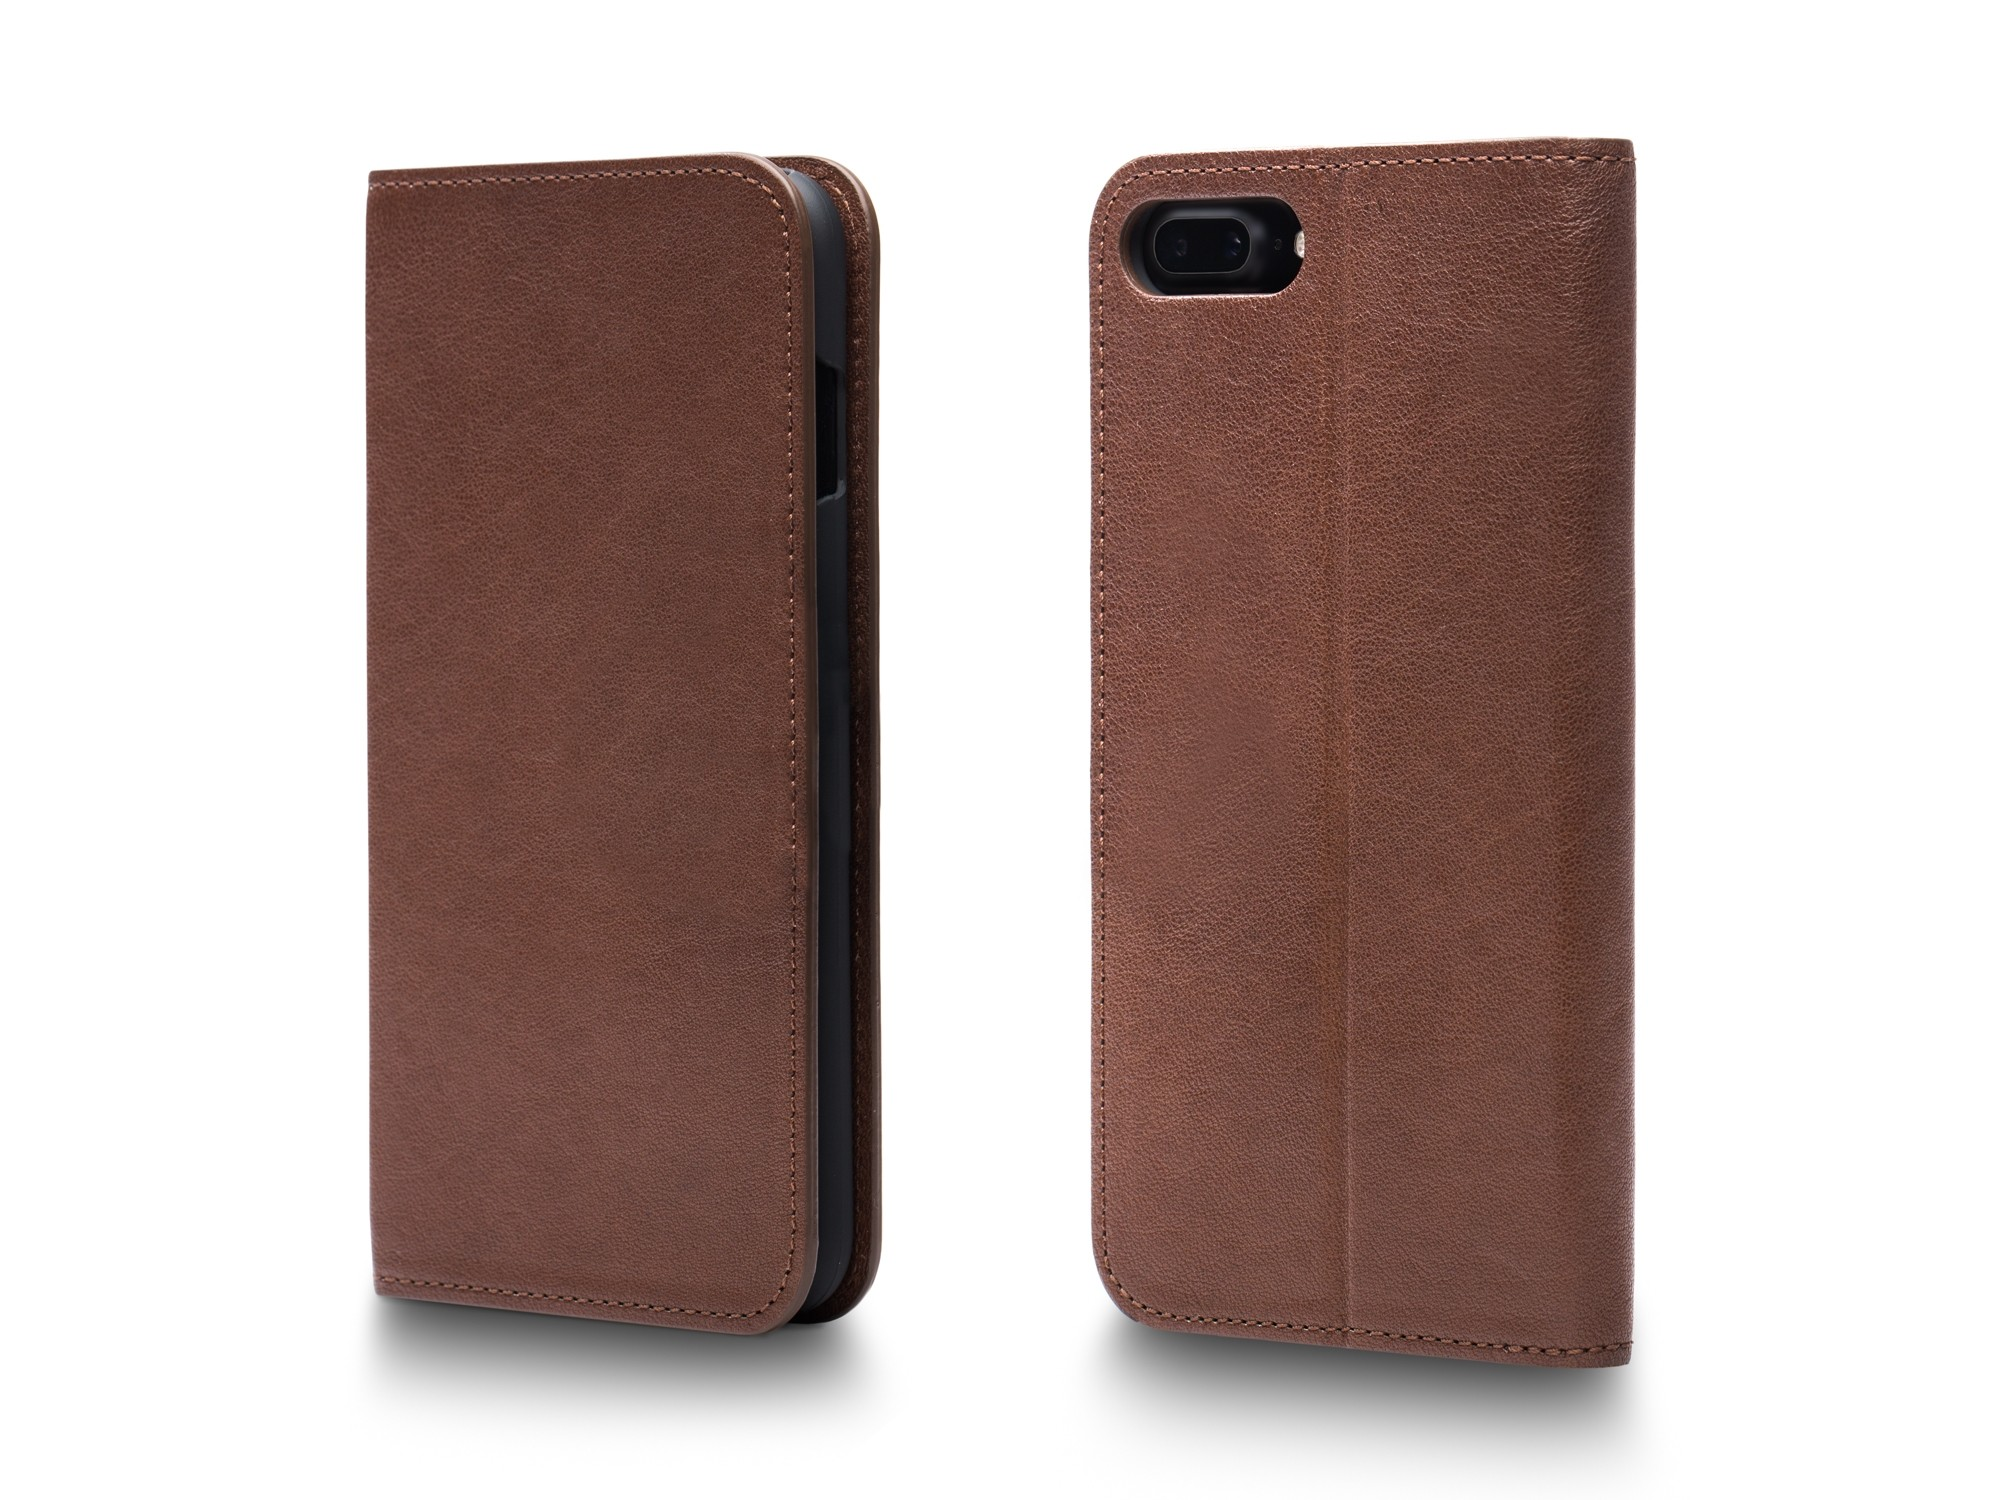 iPhone 8 Case with Card Slots on Back